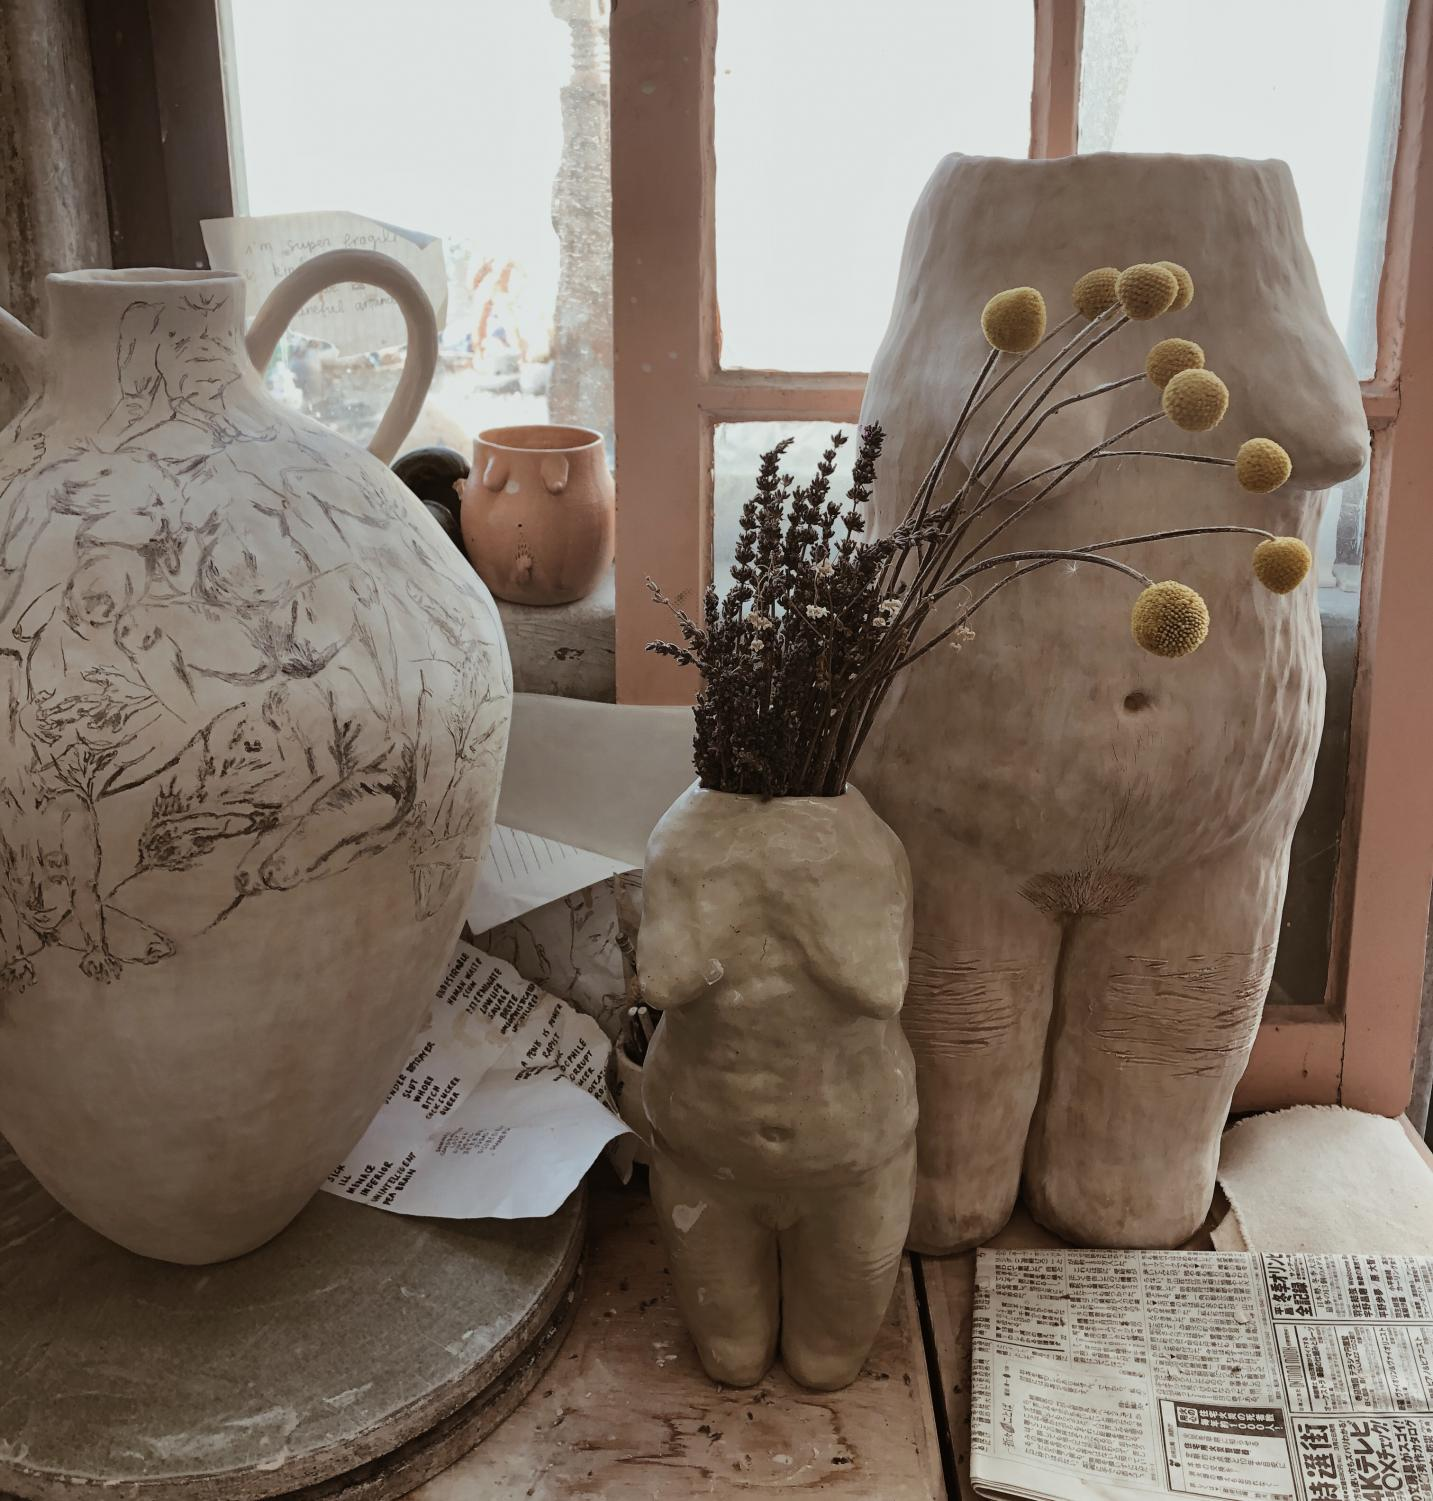 Their pottery takes on natural body figures.